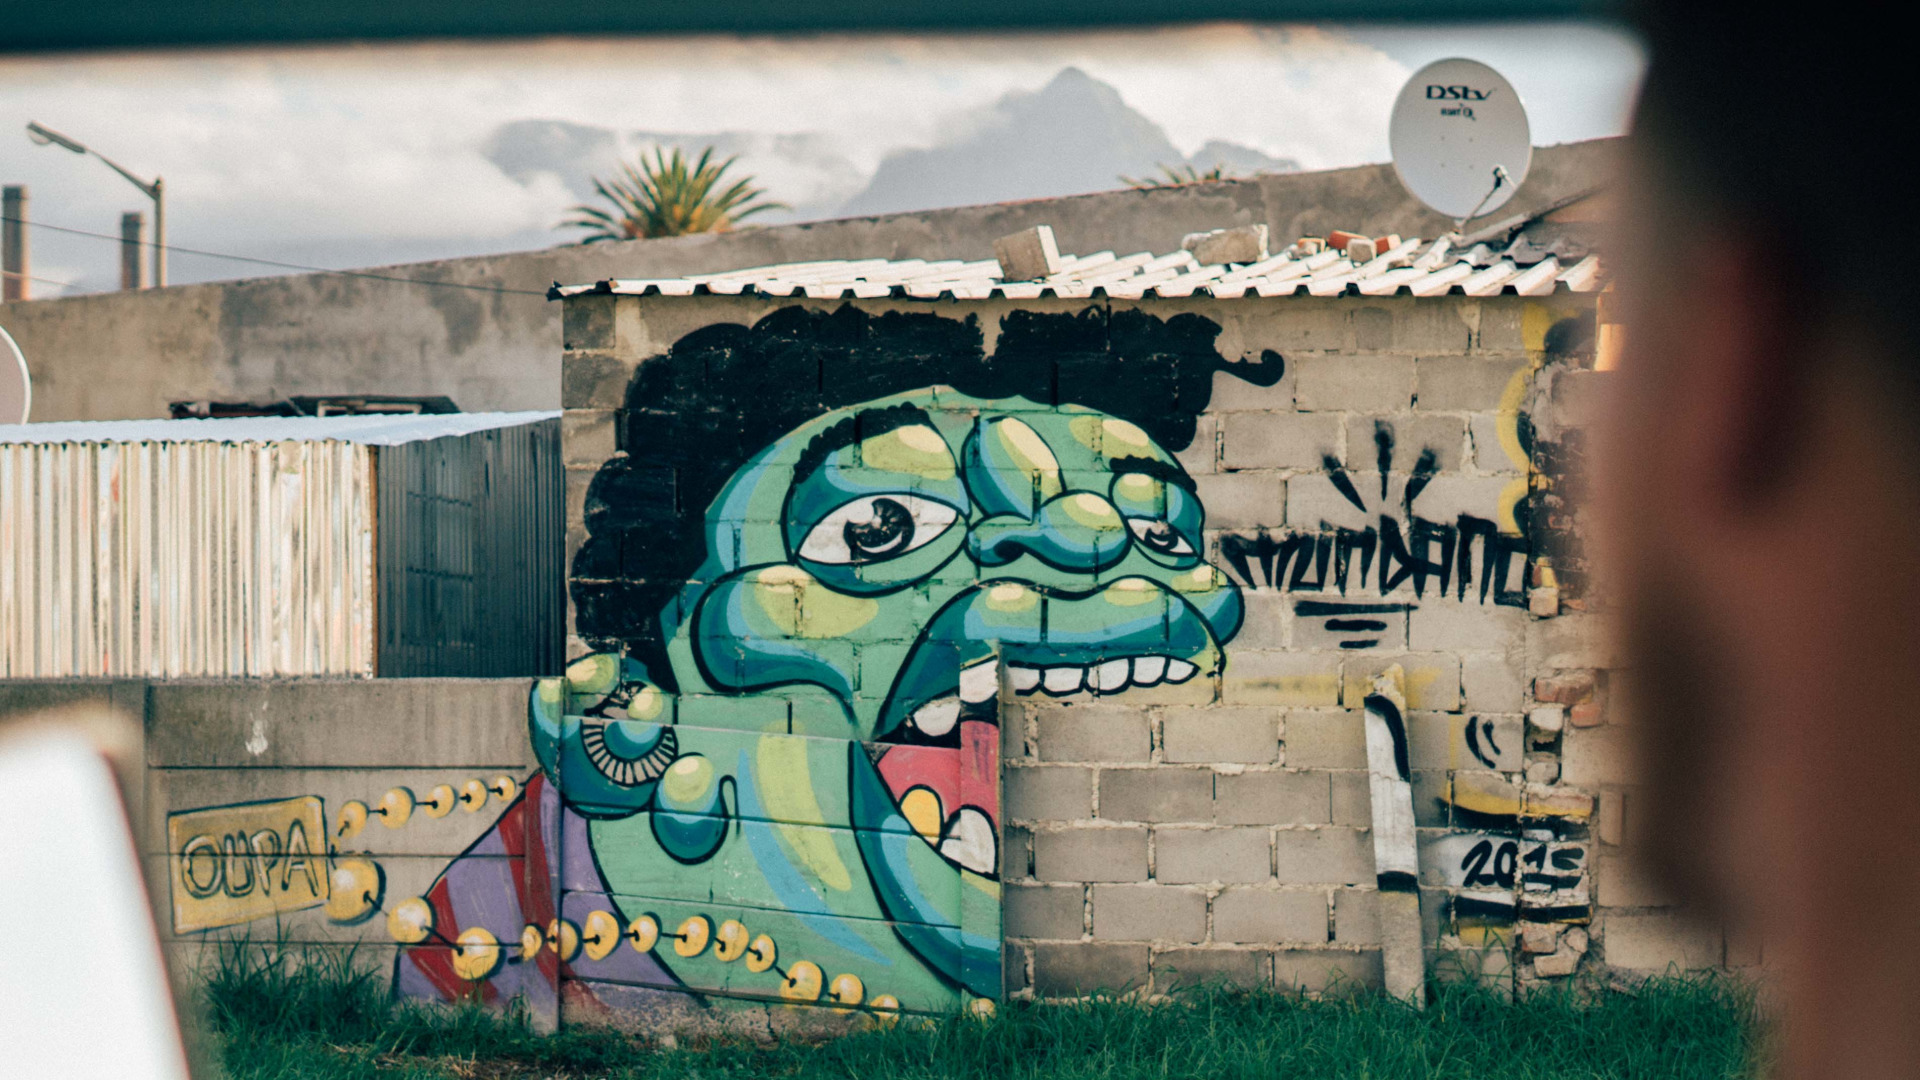 Township tour + street art